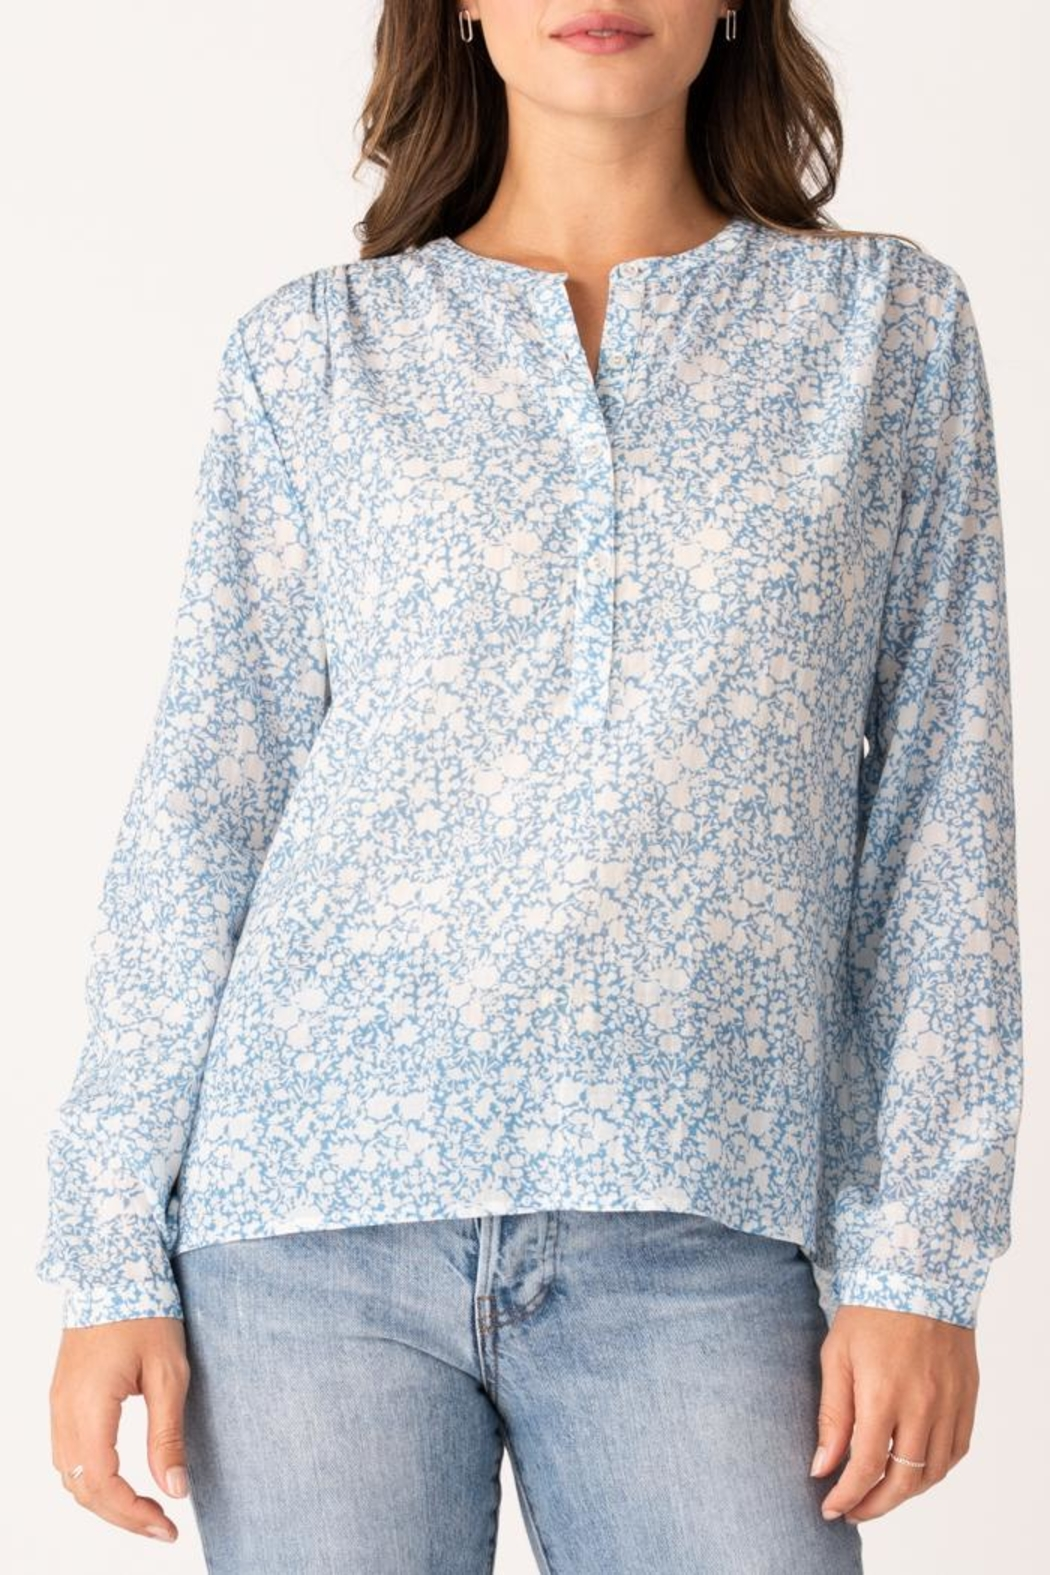 Margaret O'Leary Relaxed Shirt - Main Image